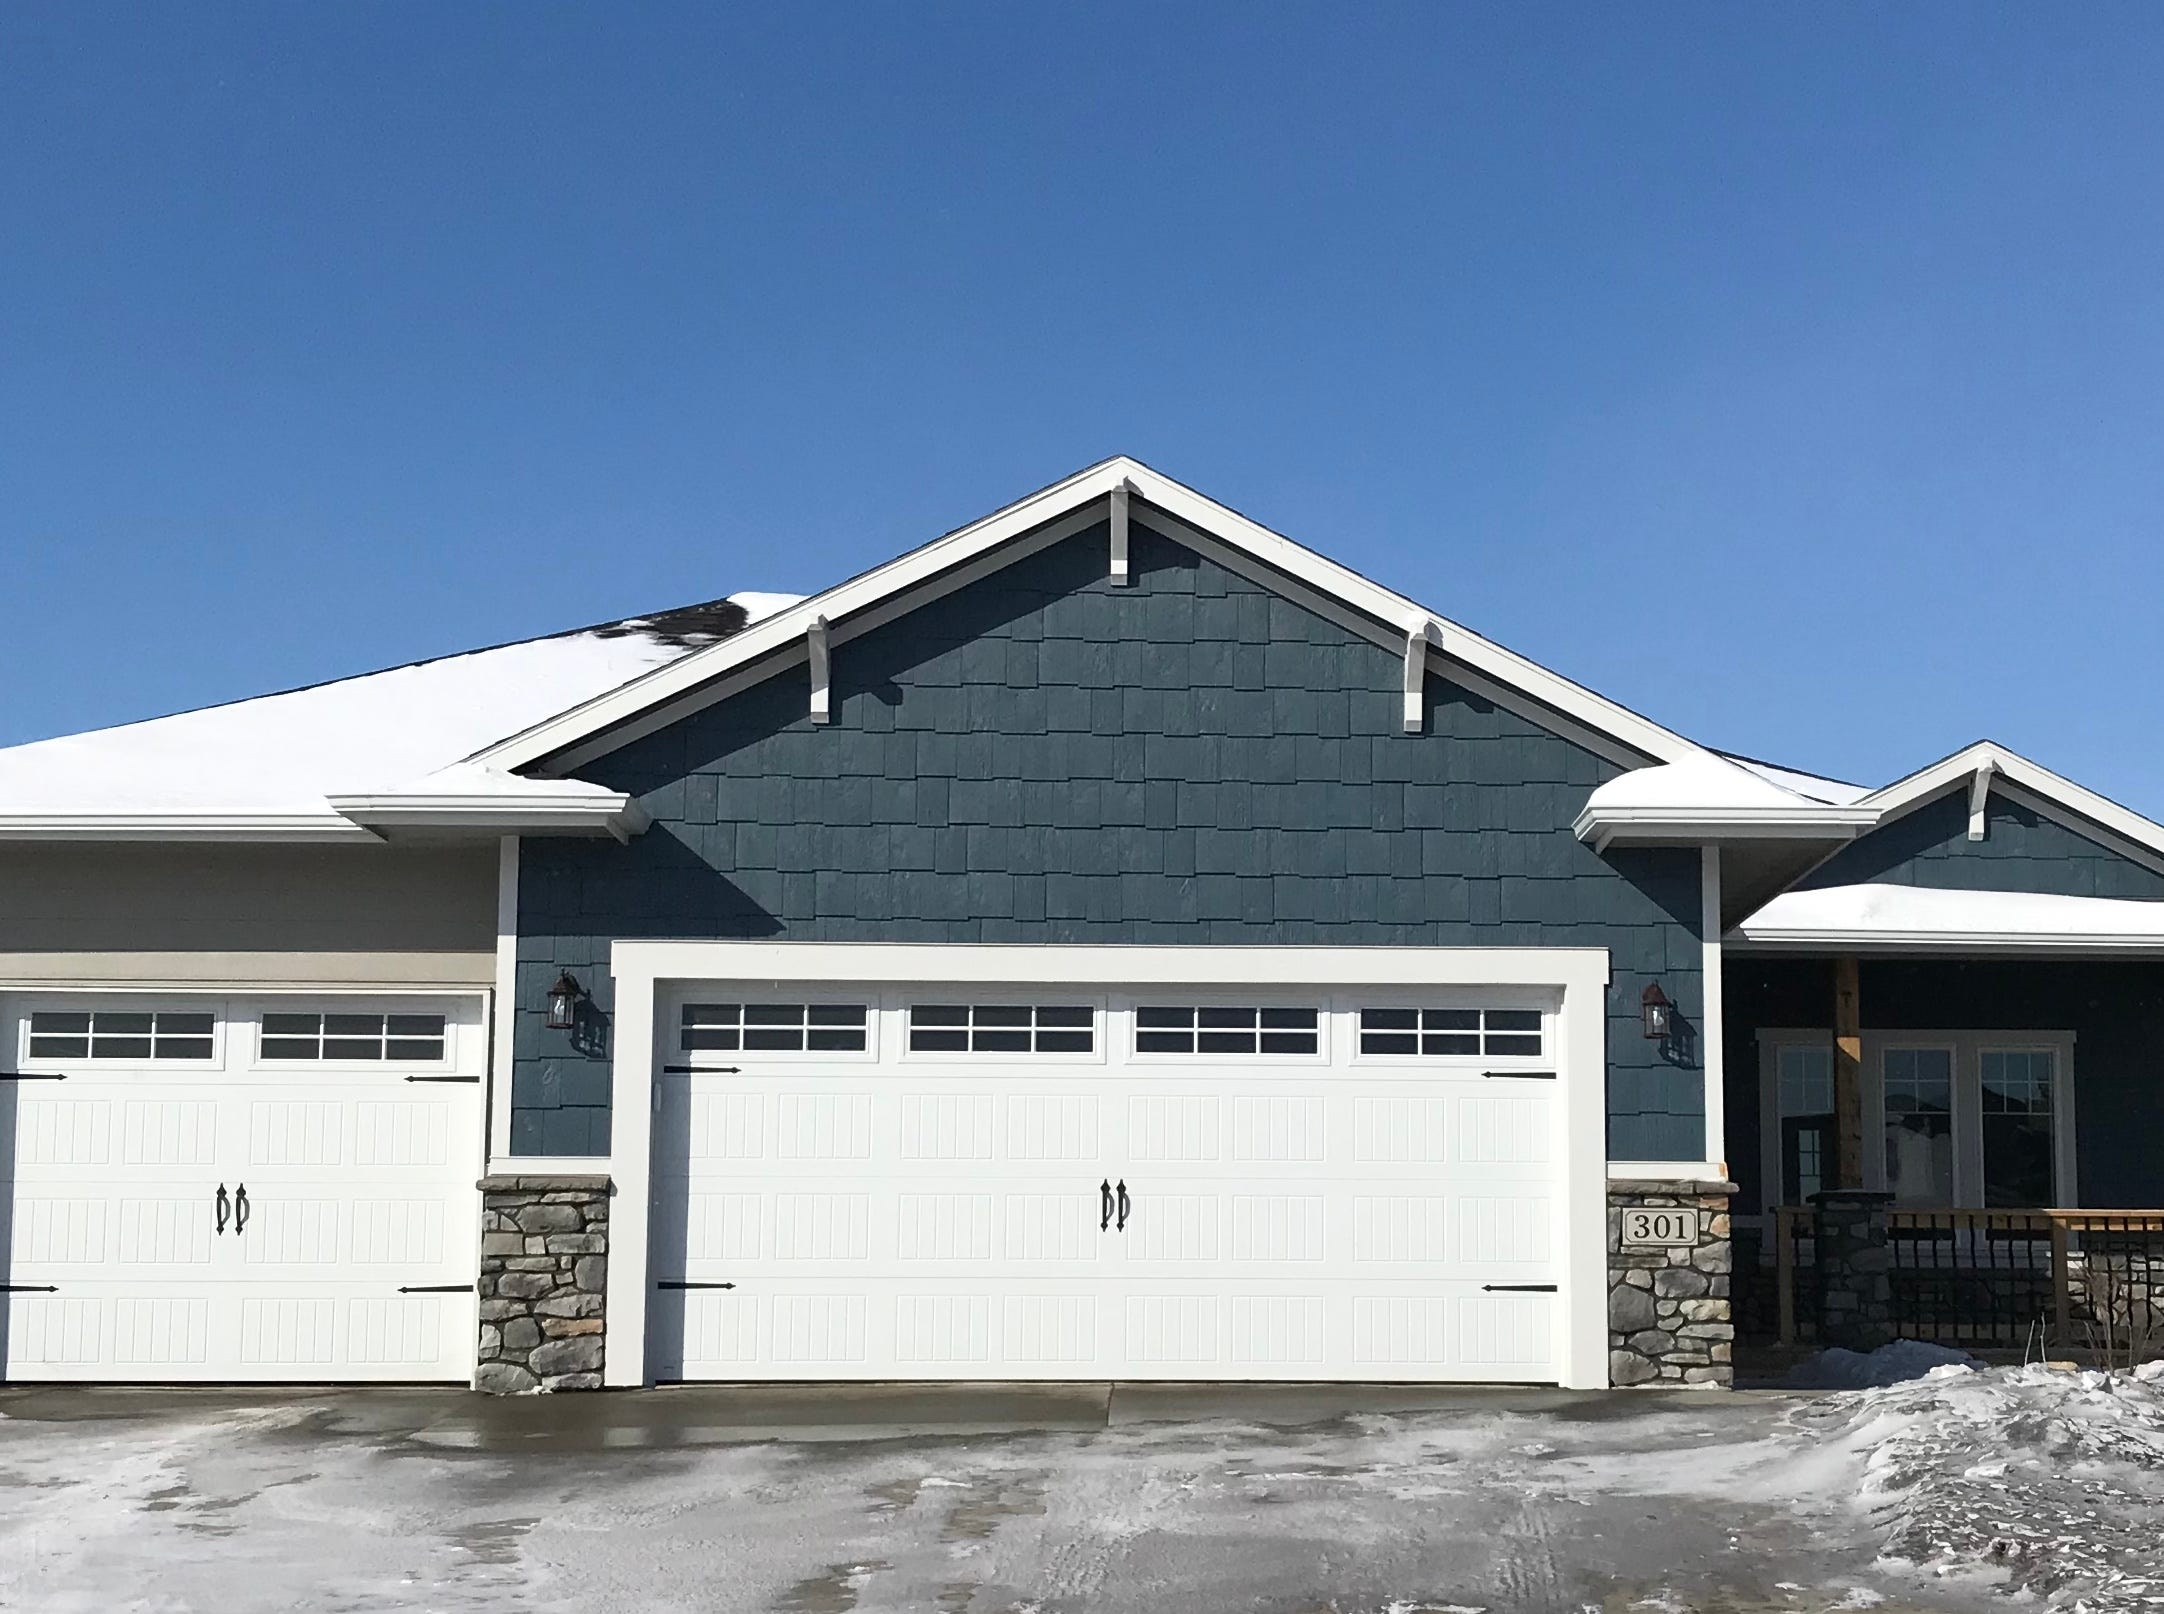 This home at 301 S. Dockside Circle, in the Norway Pines addition to Cherry Lake Reserve, sold for $465,000, according to Minnehaha County public records, topping our home sales list for the week ending Dec. 28.